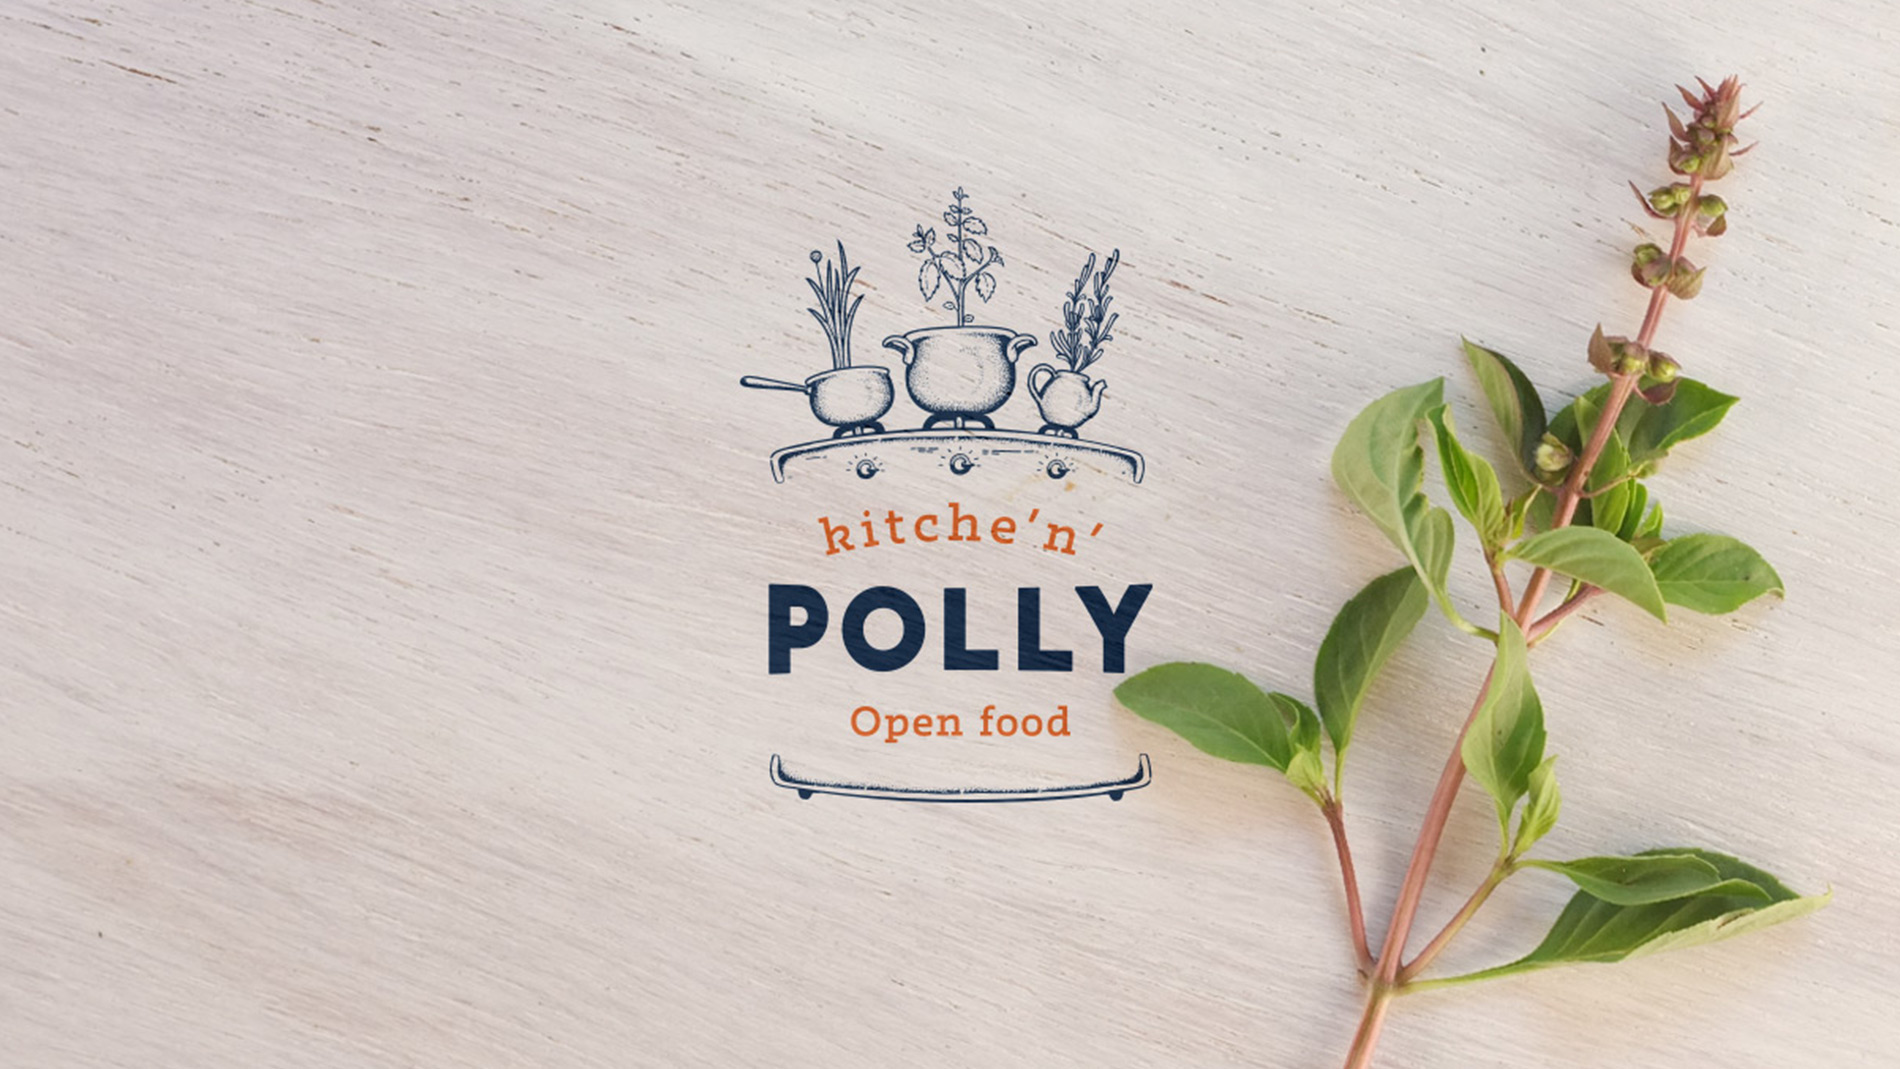 kitche'n'polly